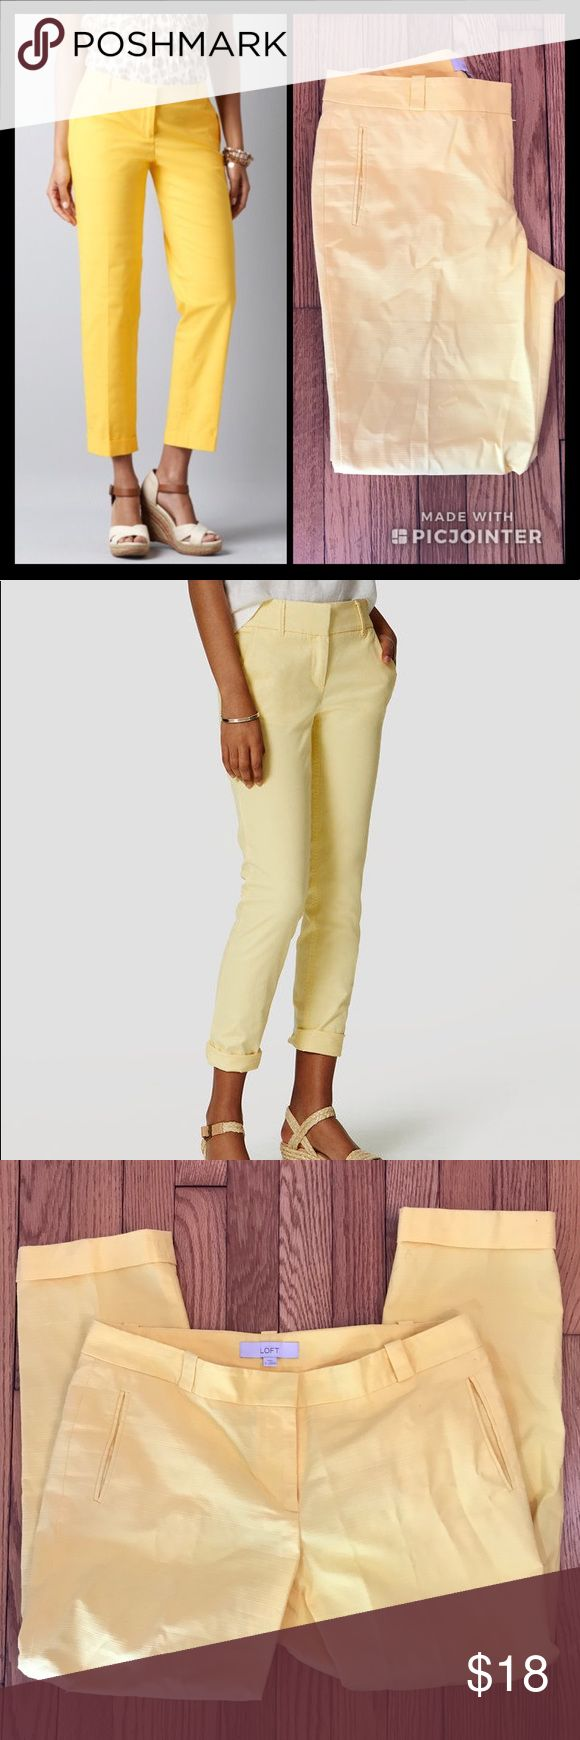 Ann Taylor LOFT Cropped Skinny Chino (Size 8) Adorable canary yellow cropped chino pants by Ann Taylor LOFT in Size 8. These fun, bright pants are perfect for when the weather turns warm! Material is 98% cotton and 2% spandex. Rolled cuff at bottom, front slash pockets, belt loops, and back welt pockets. Excellent condition. Dry clean only. Inseam length is 25 inches. Rise length is 12 inches. Color is best represented by model picture in cover photo (bright canary yellow). LOFT Pants Ankle…